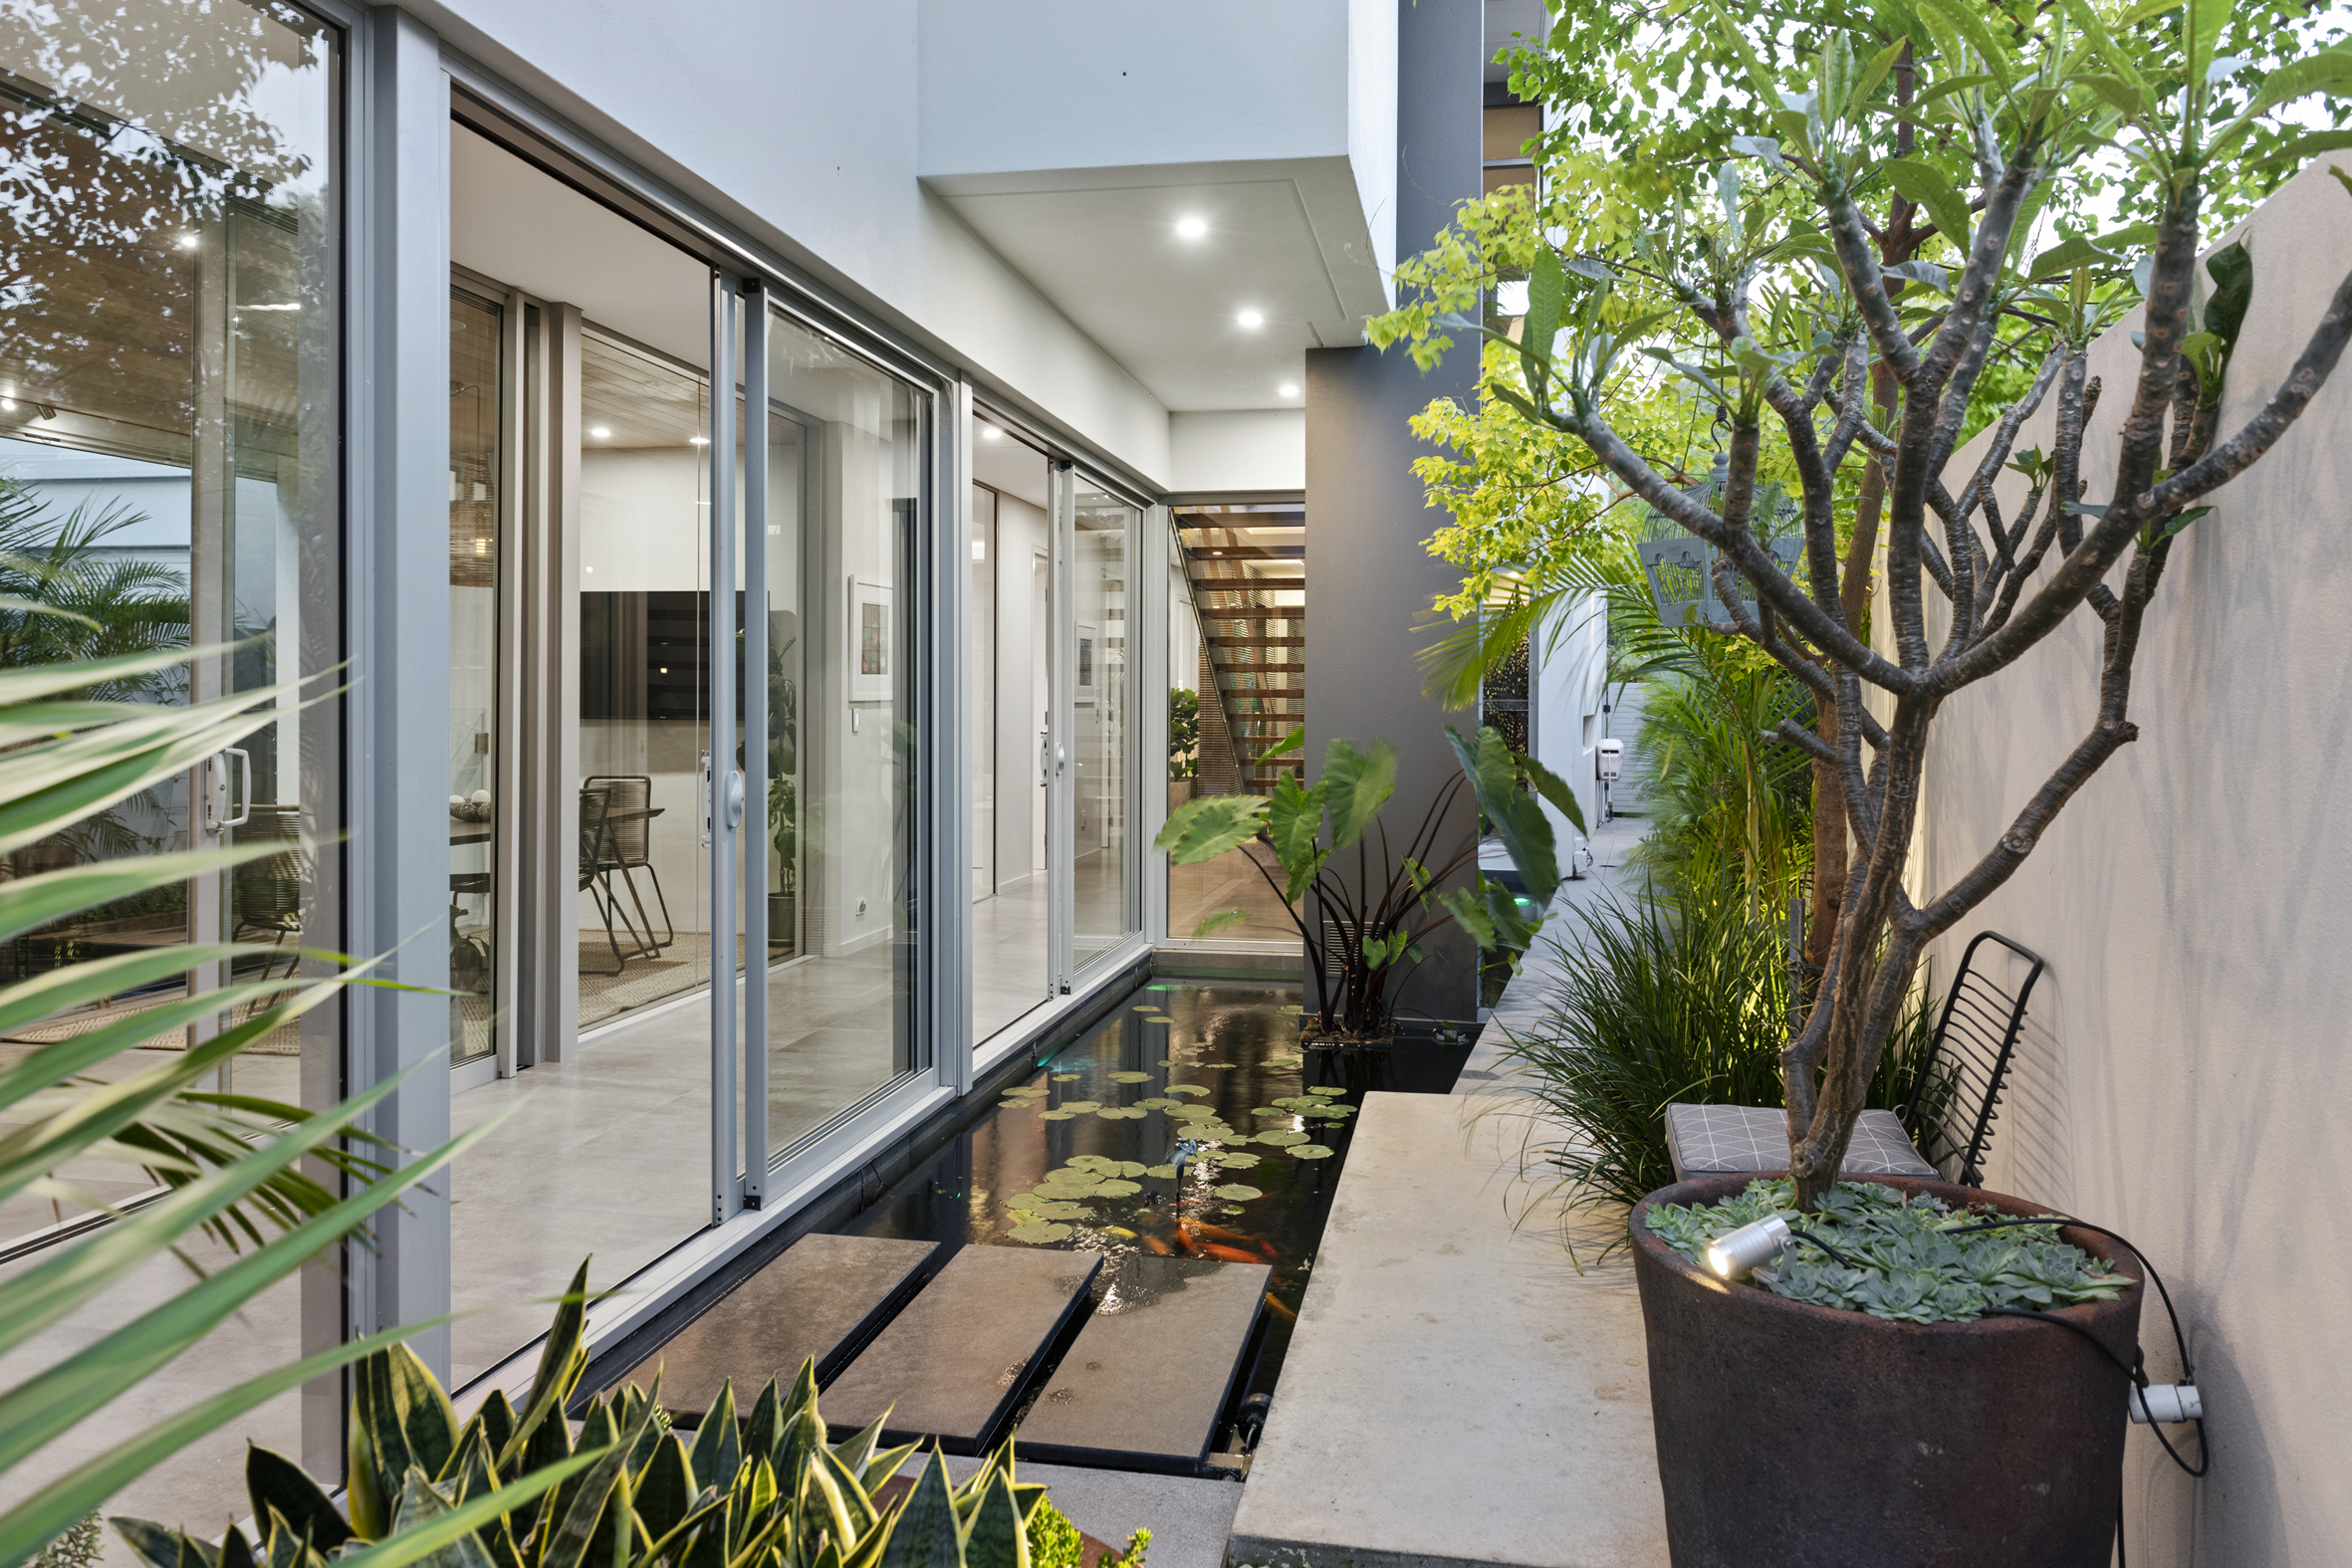 110A Geographe Bay Road, Dunsborough - Offers by February 21